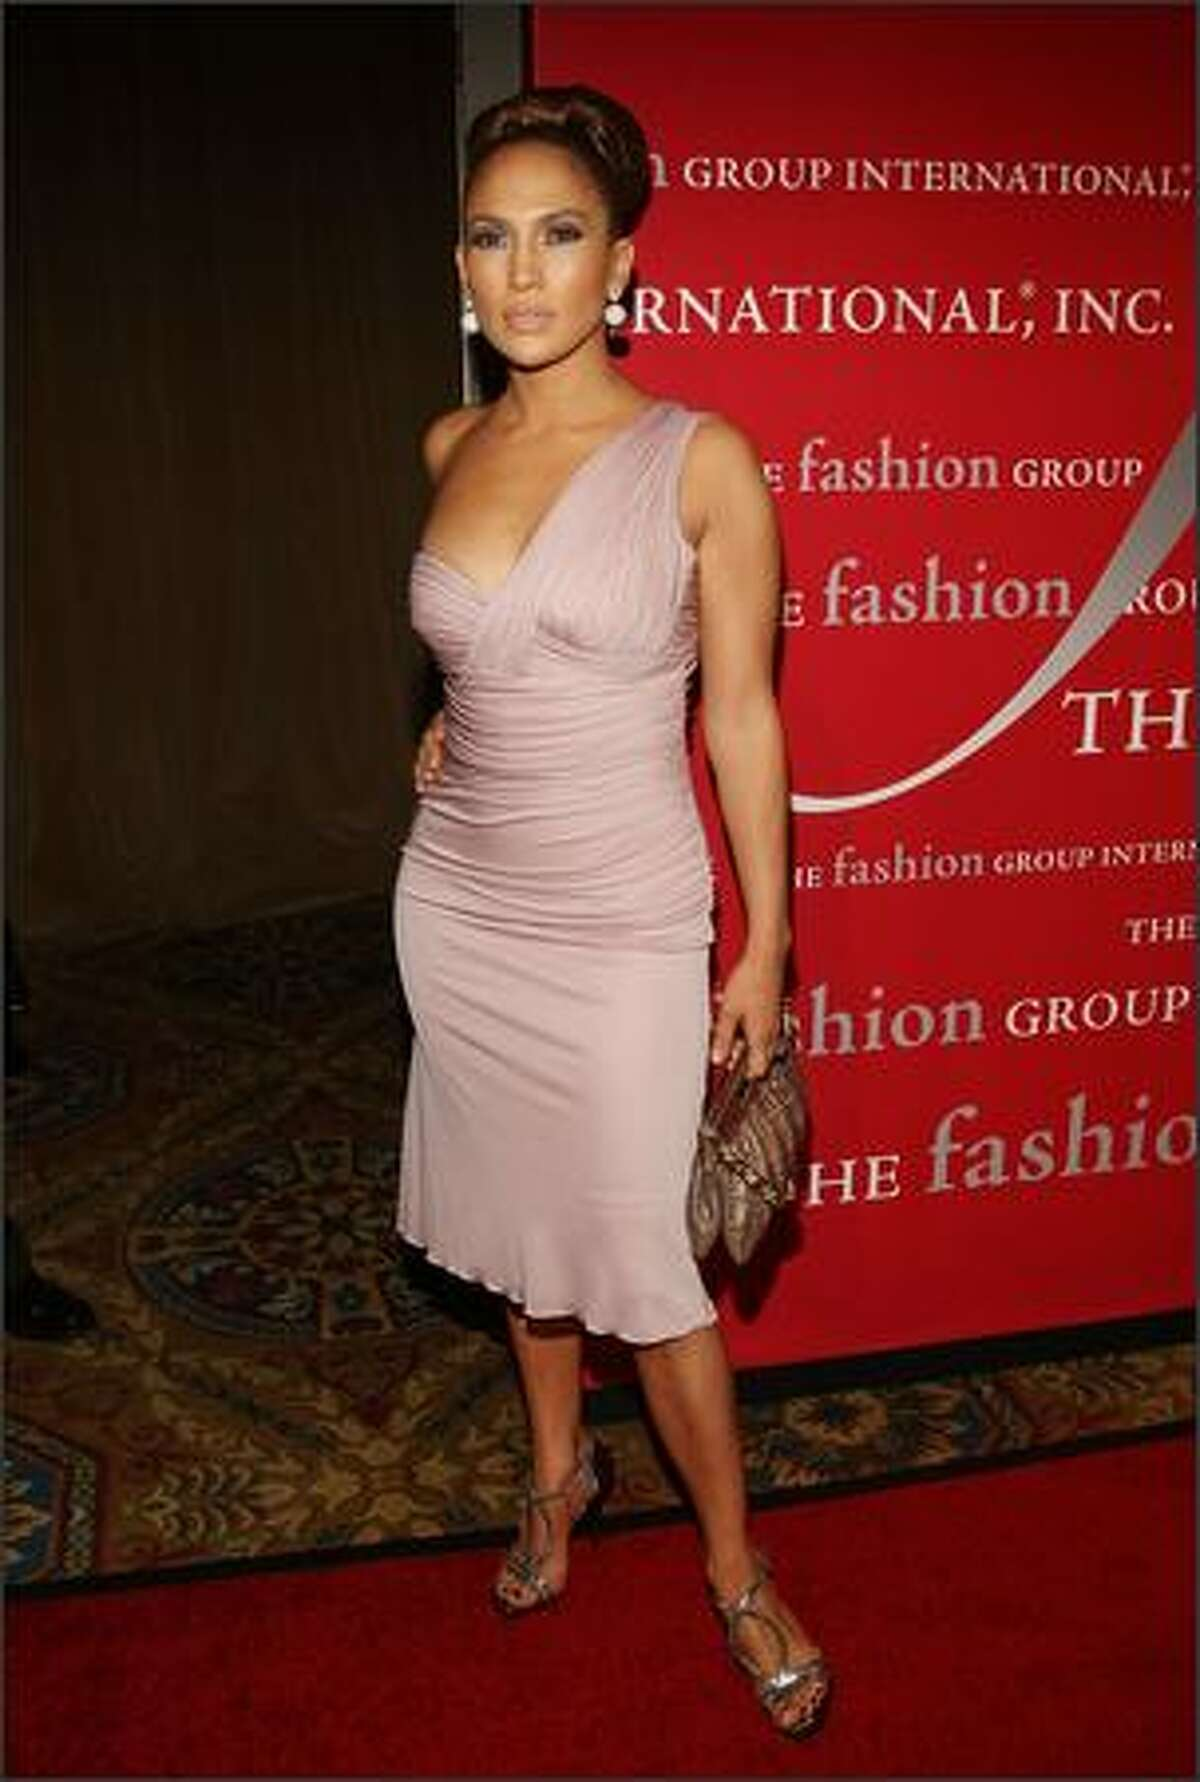 Singer/actress Jennifer Lopez attends the 25th annual Night of Stars hosted by Fashion Group International at Cipriani Wall Street in New York on Thursday.